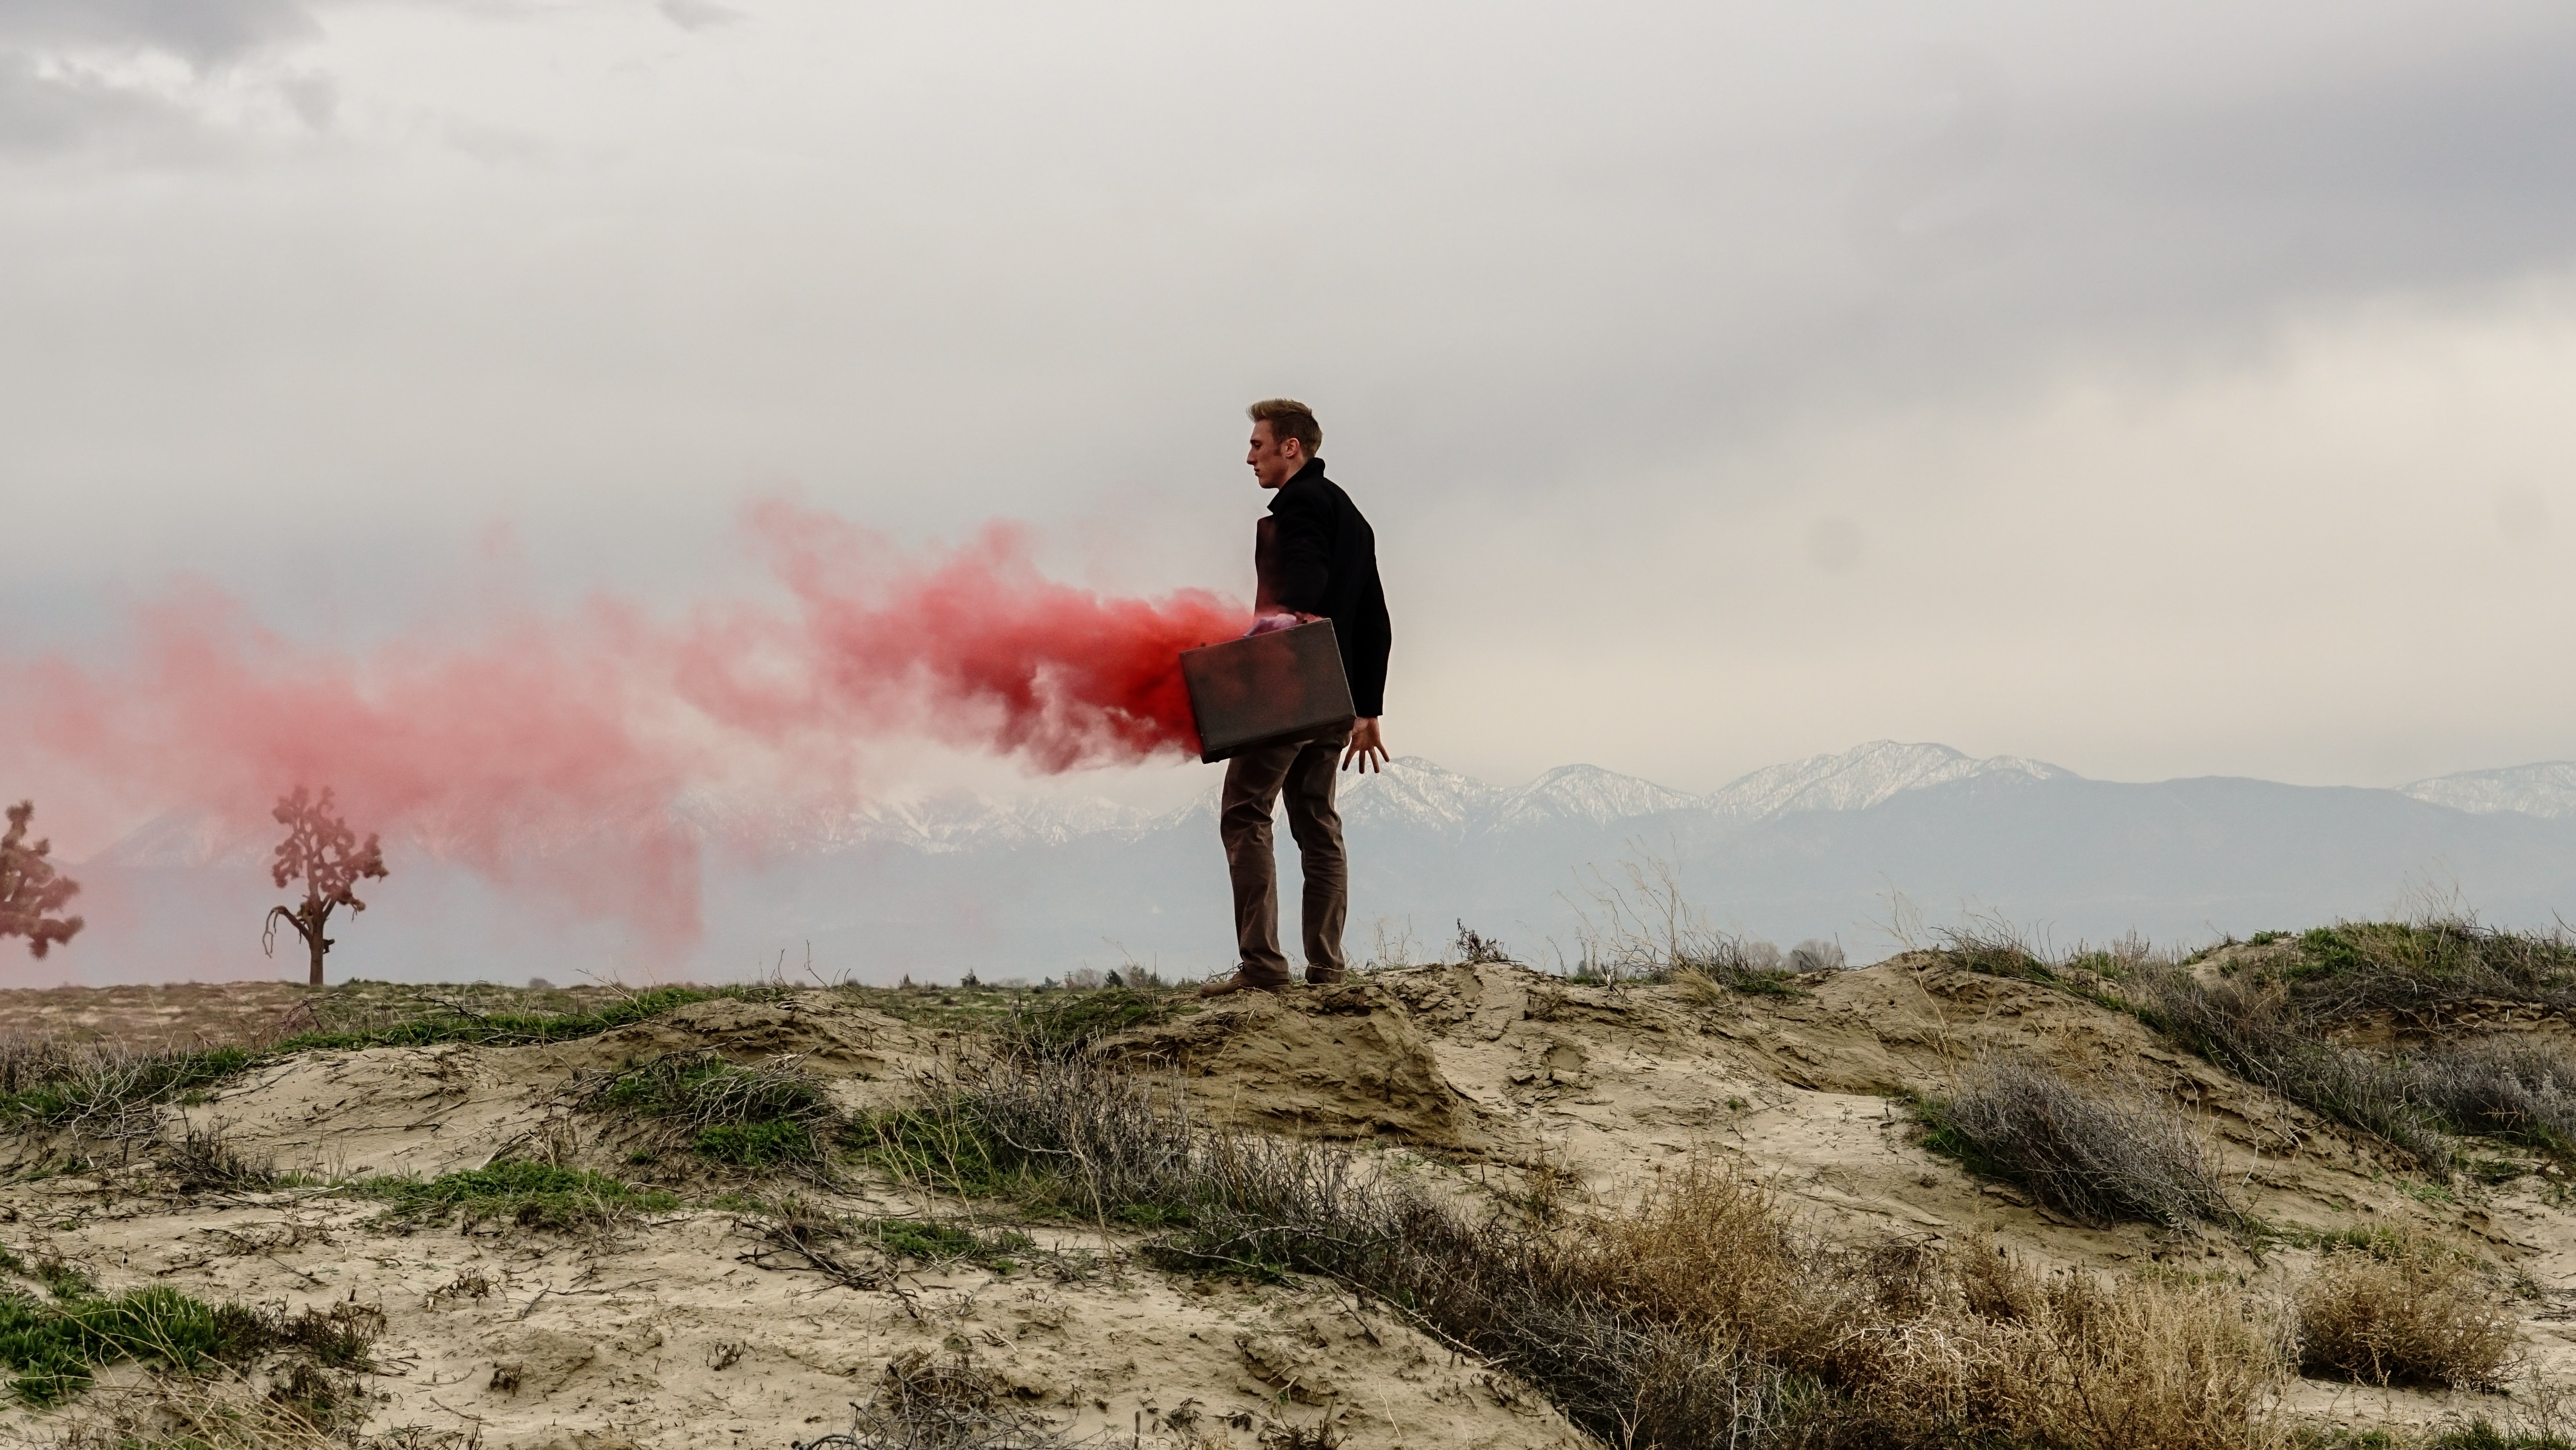 Red smoke escaping a briefcase, held by a business man at the edge of a cliff.